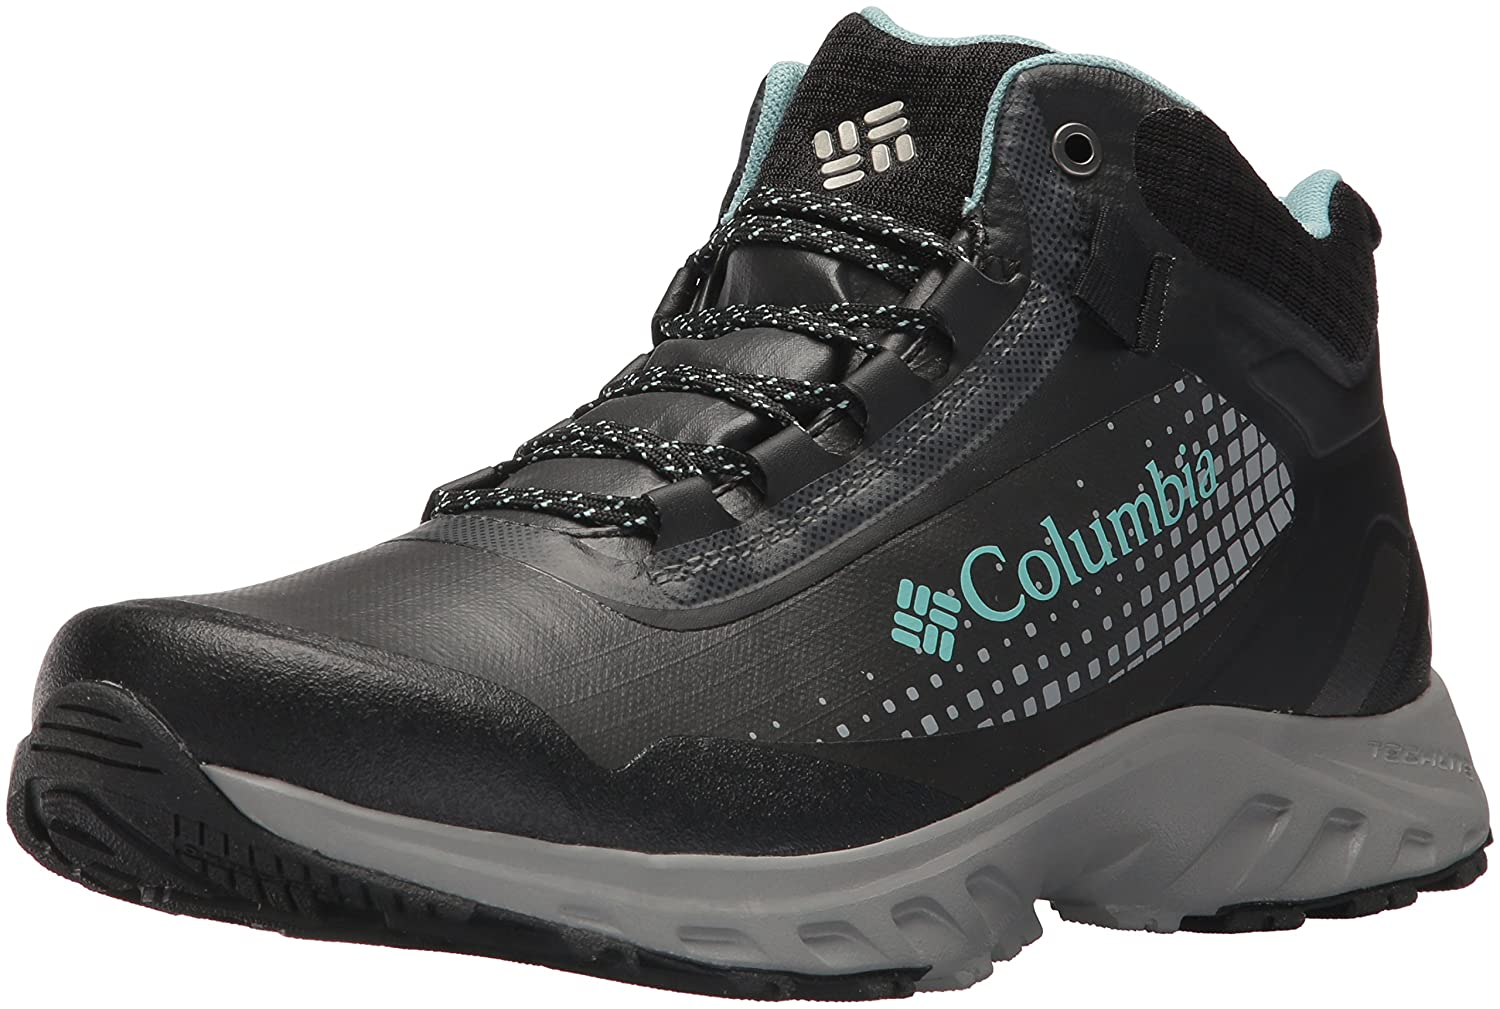 Columbia Women's Irrigon Trail Mid Outdry Xtrm Hiking Boot B073RNBW3L 8 B(M) US|Black, Iceberg